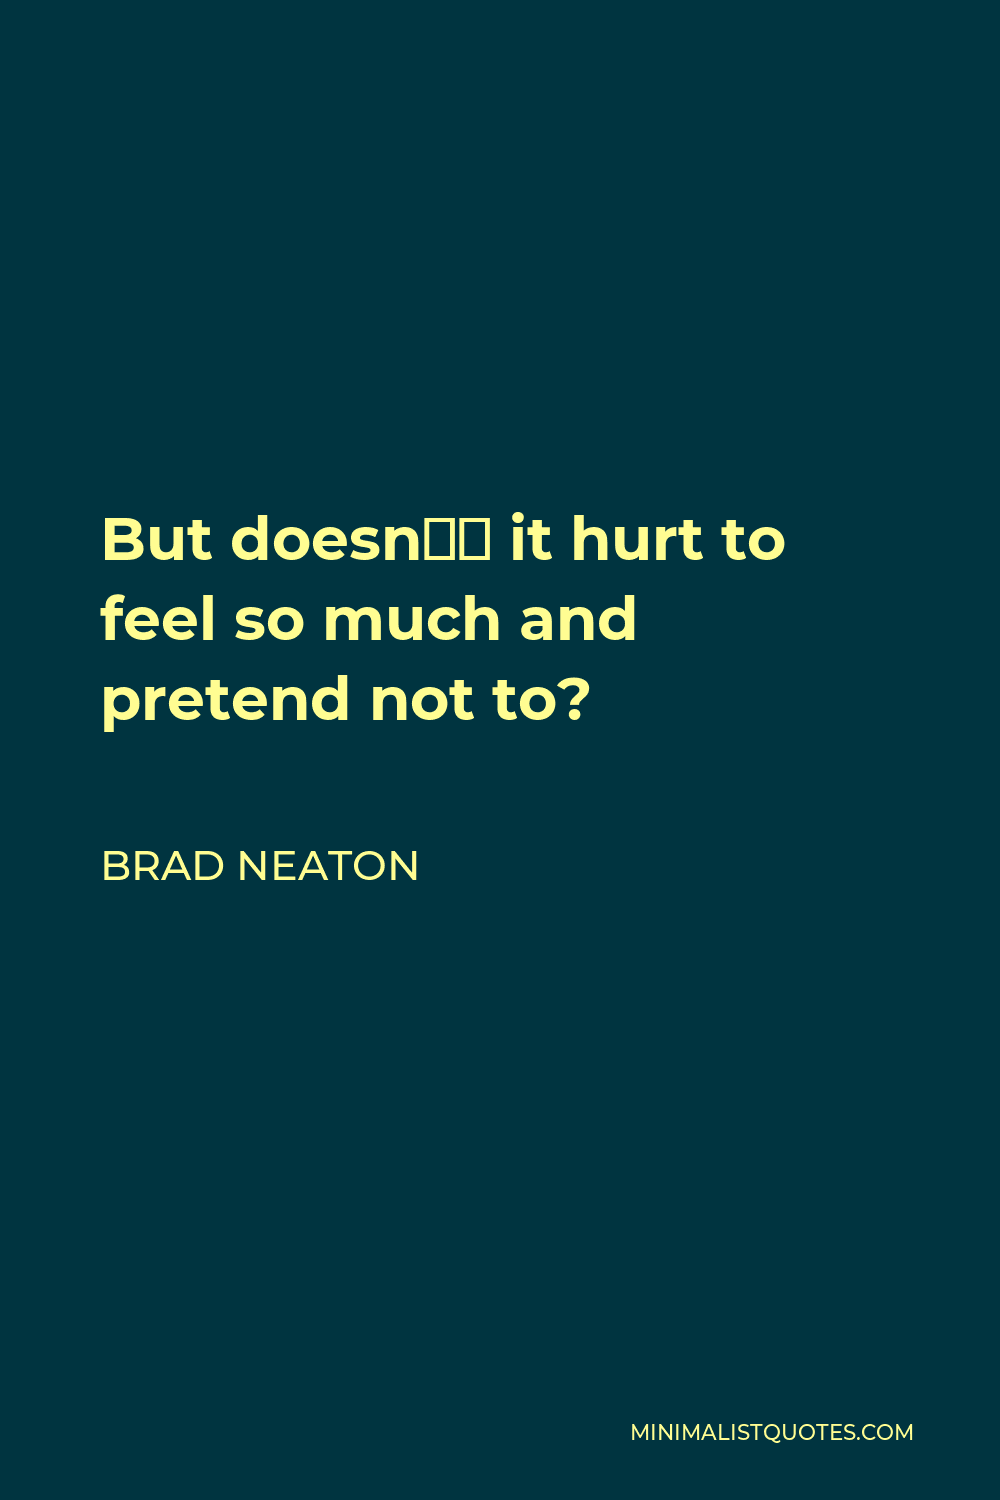 Brad Neaton Quote - But doesn't it hurt to feel so much and pretend not to?